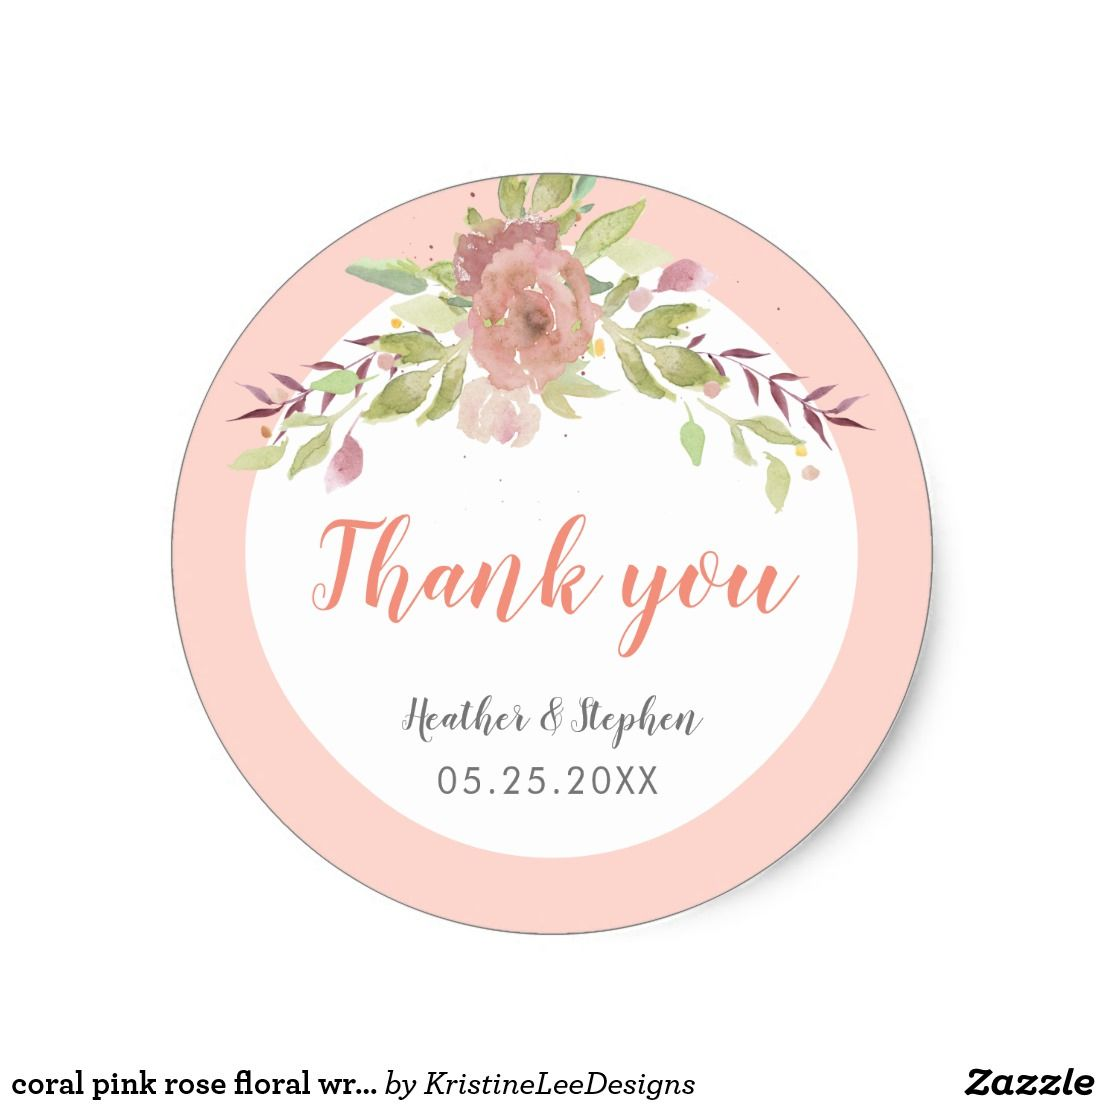 Wedding Customized Stickers Pink Floral Roses Flowers Birthday Party #079 Labels Thank You Stickers